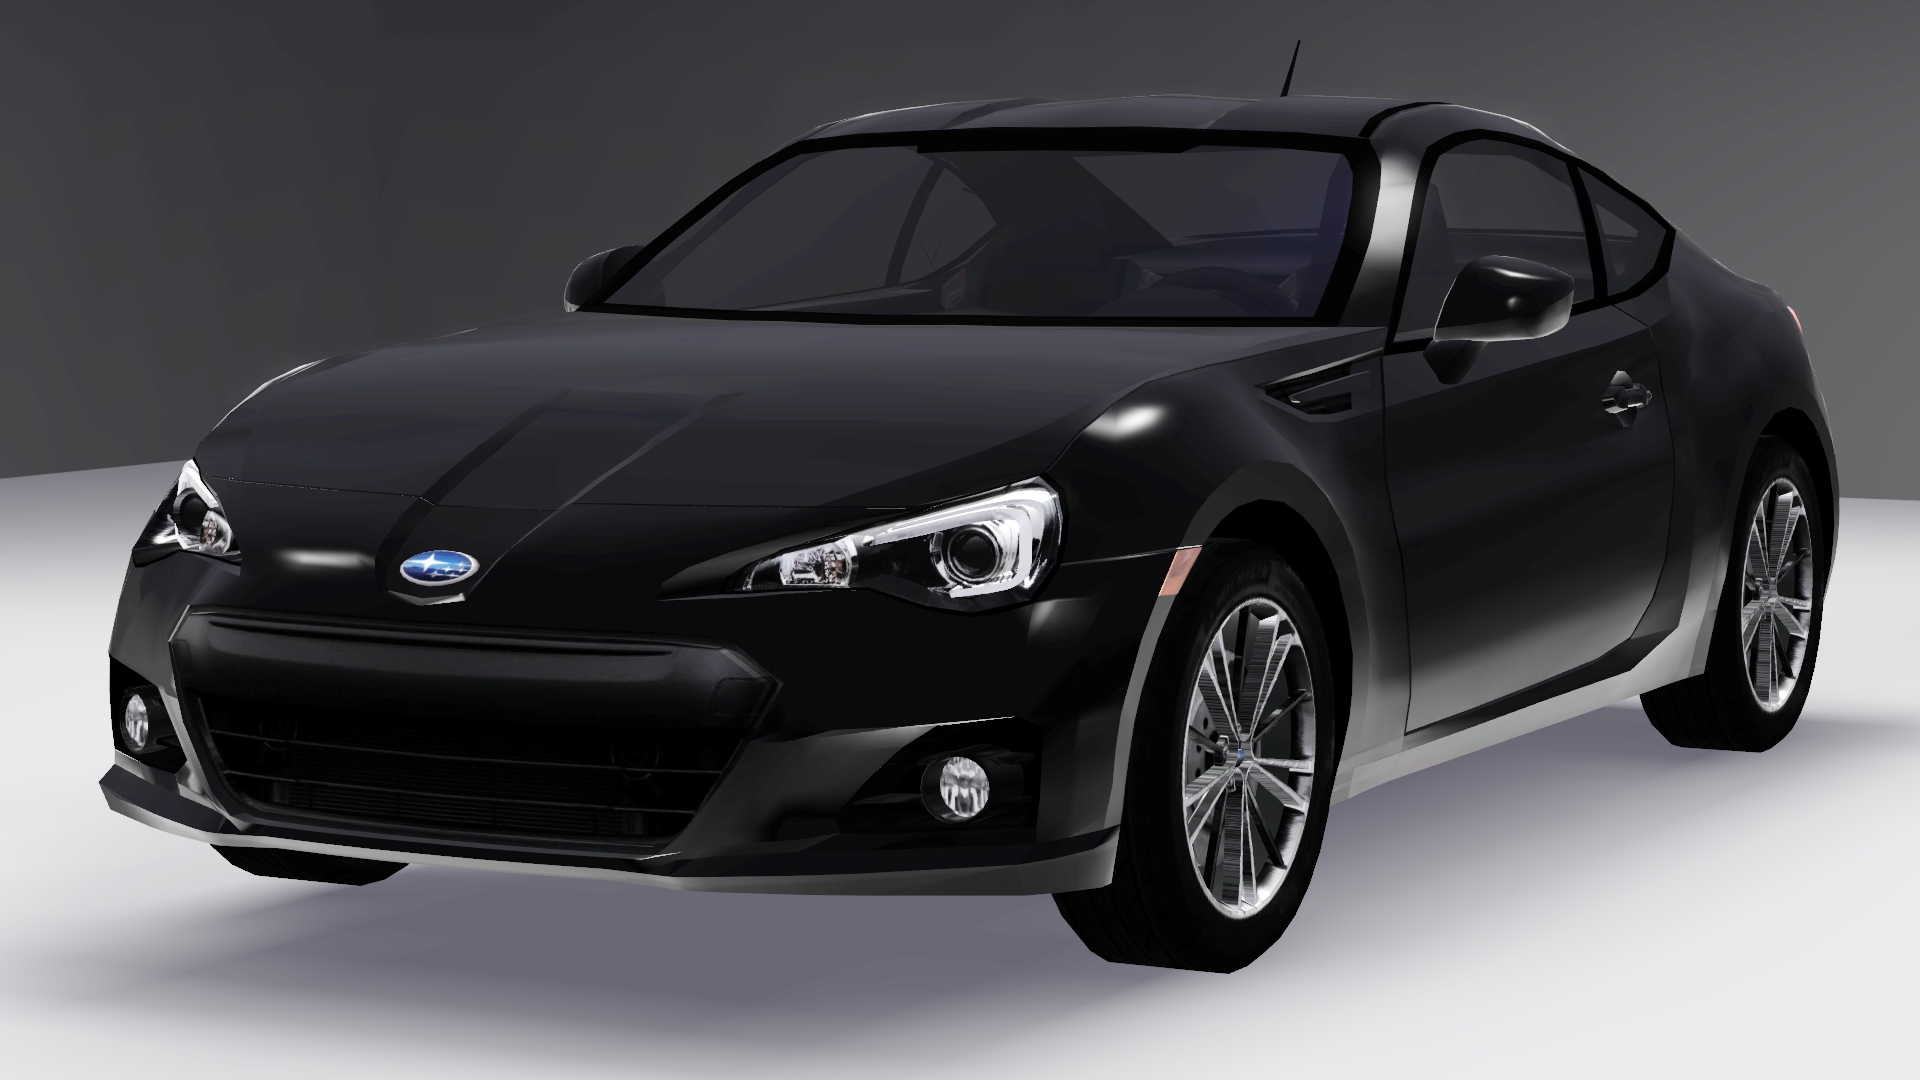 2013 Subaru BRZ by Fresh-Prince